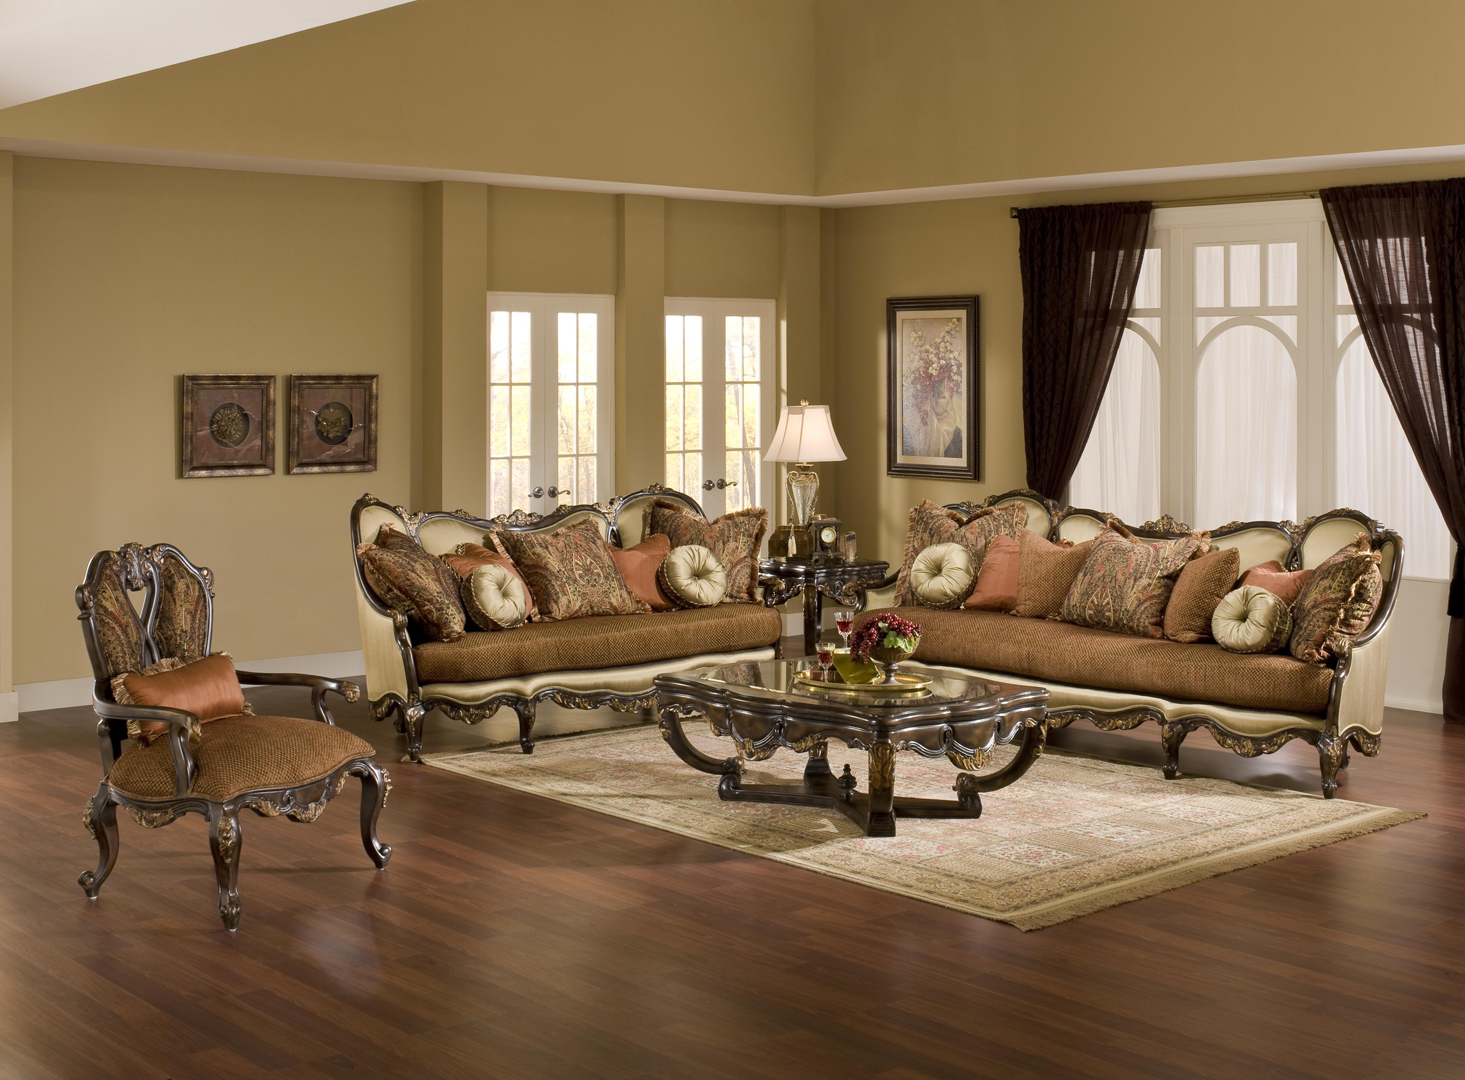 Abrianna exposed wood warm cherry finish antique style sofa - Elegant formal living room furniture ...